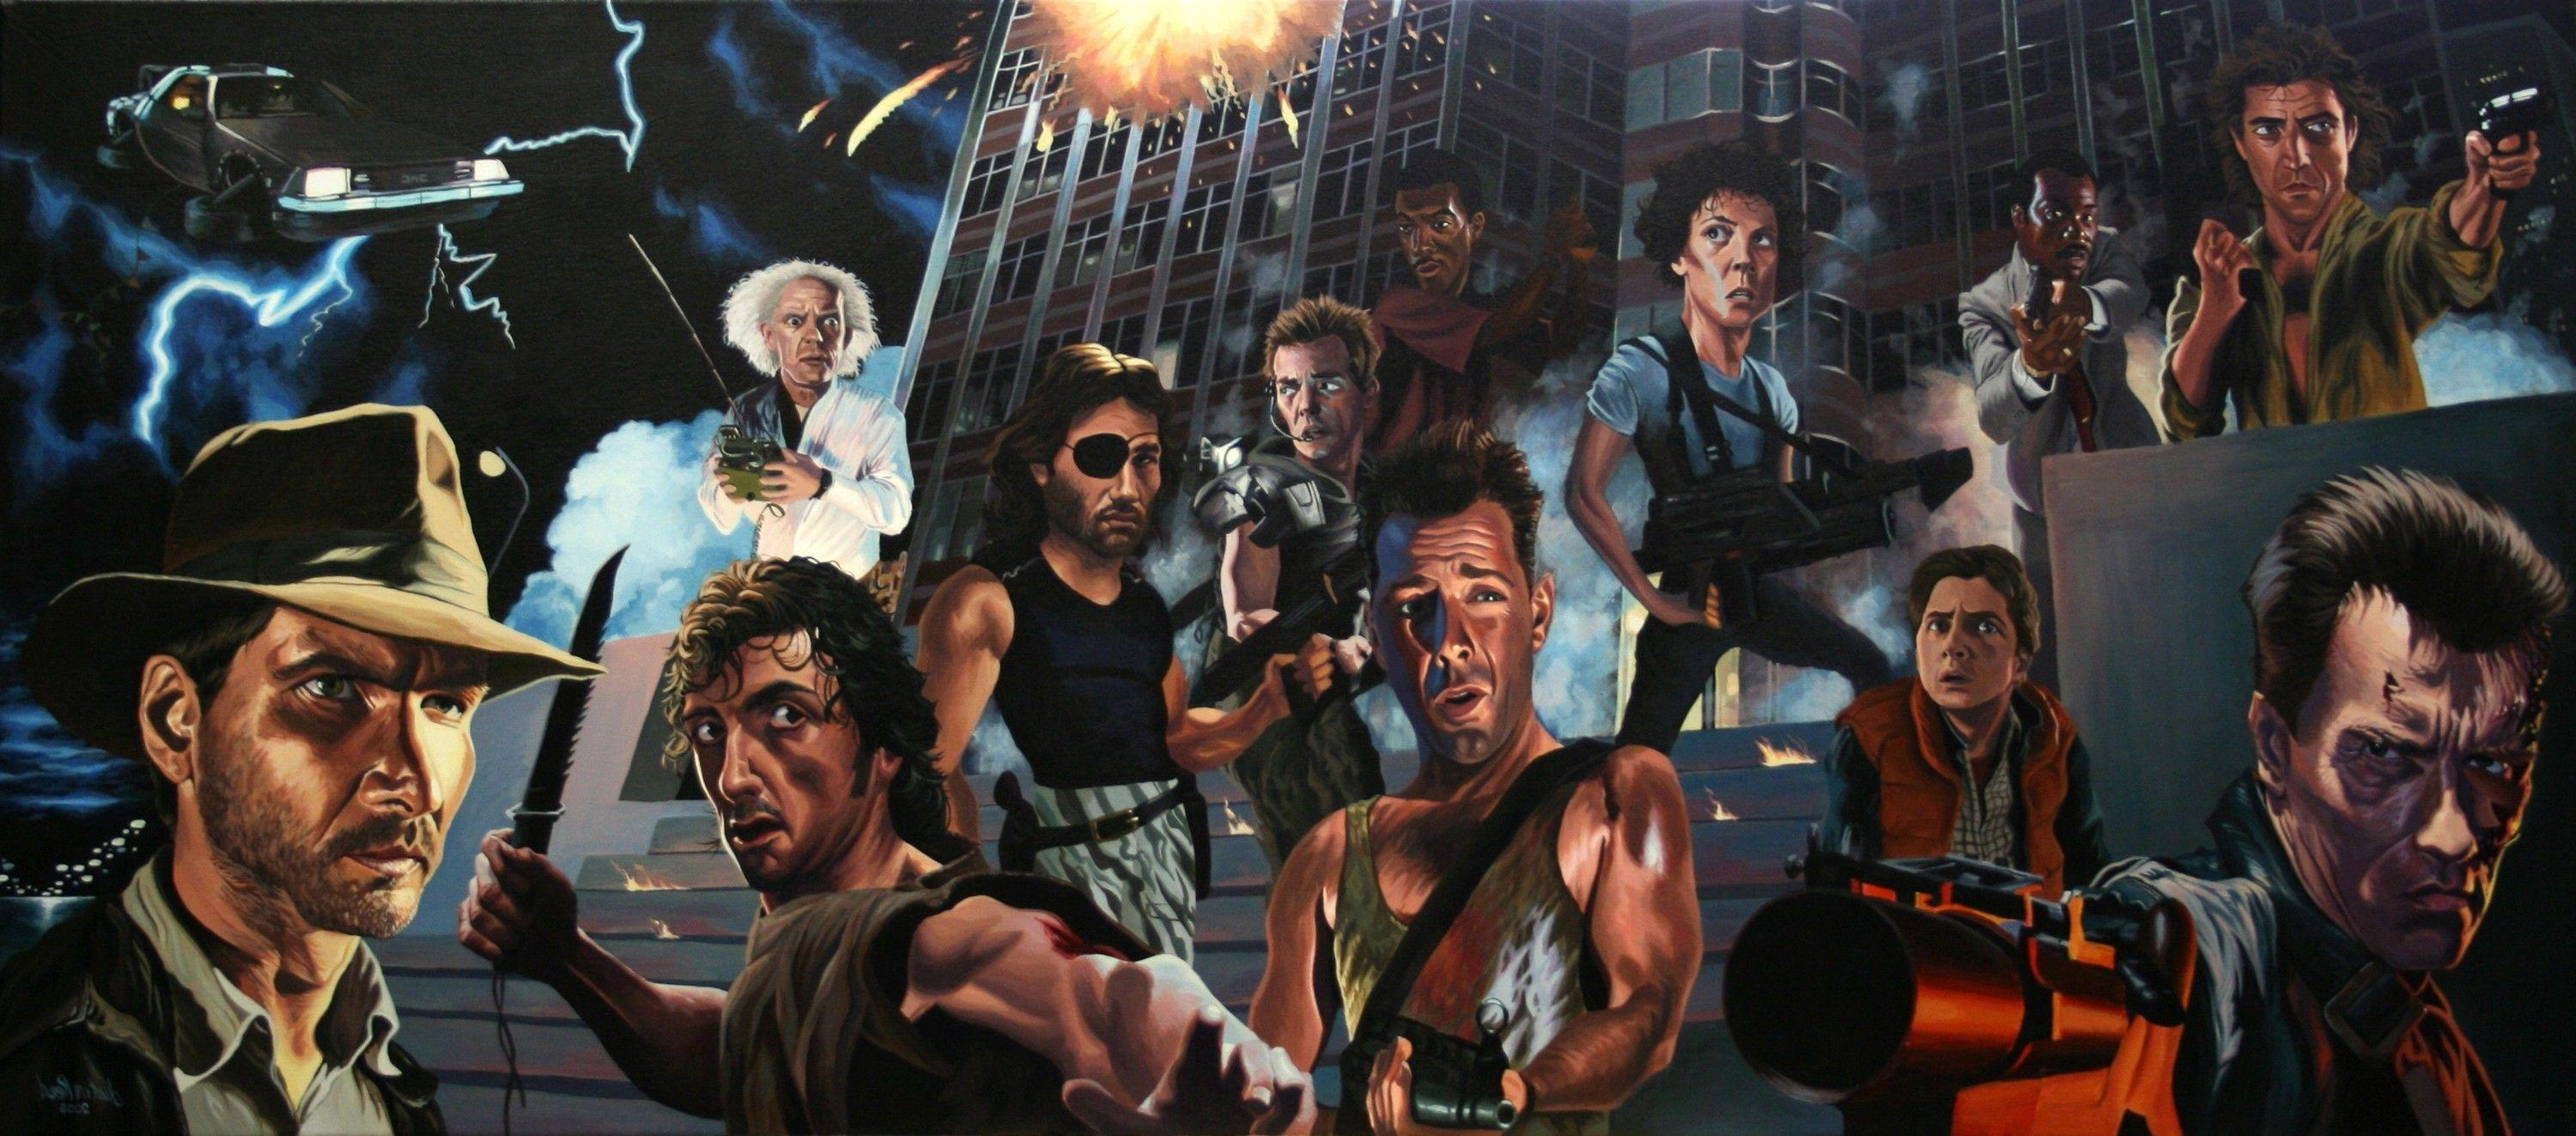 movies, Caricature, Terminator, Indiana Jones, Die Hard, Back To